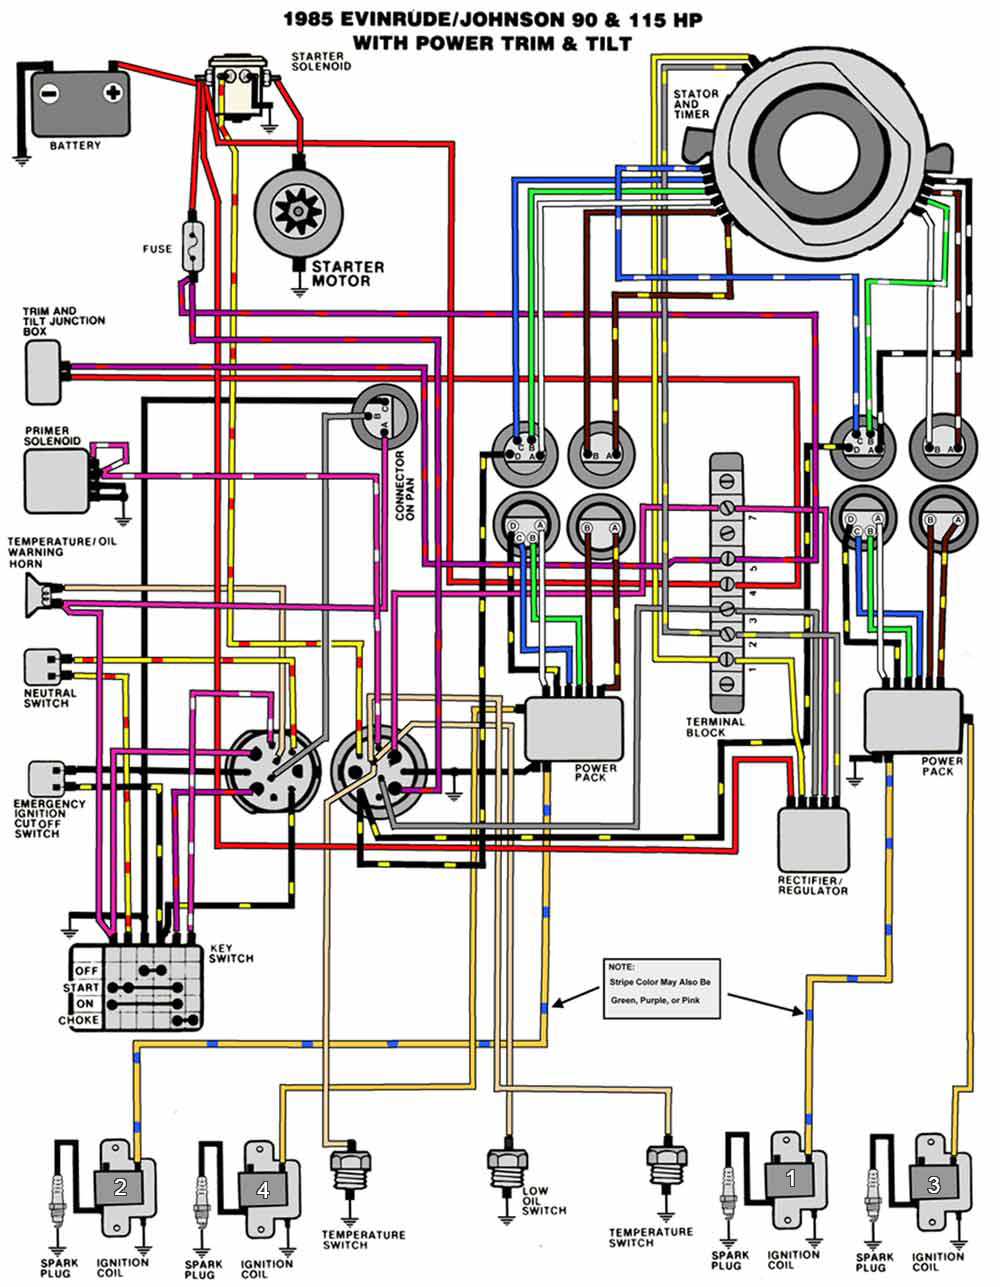 1985_90_115TnT mastertech marine evinrude johnson outboard wiring diagrams Yamaha Outboard Wiring Harness Diagram at honlapkeszites.co